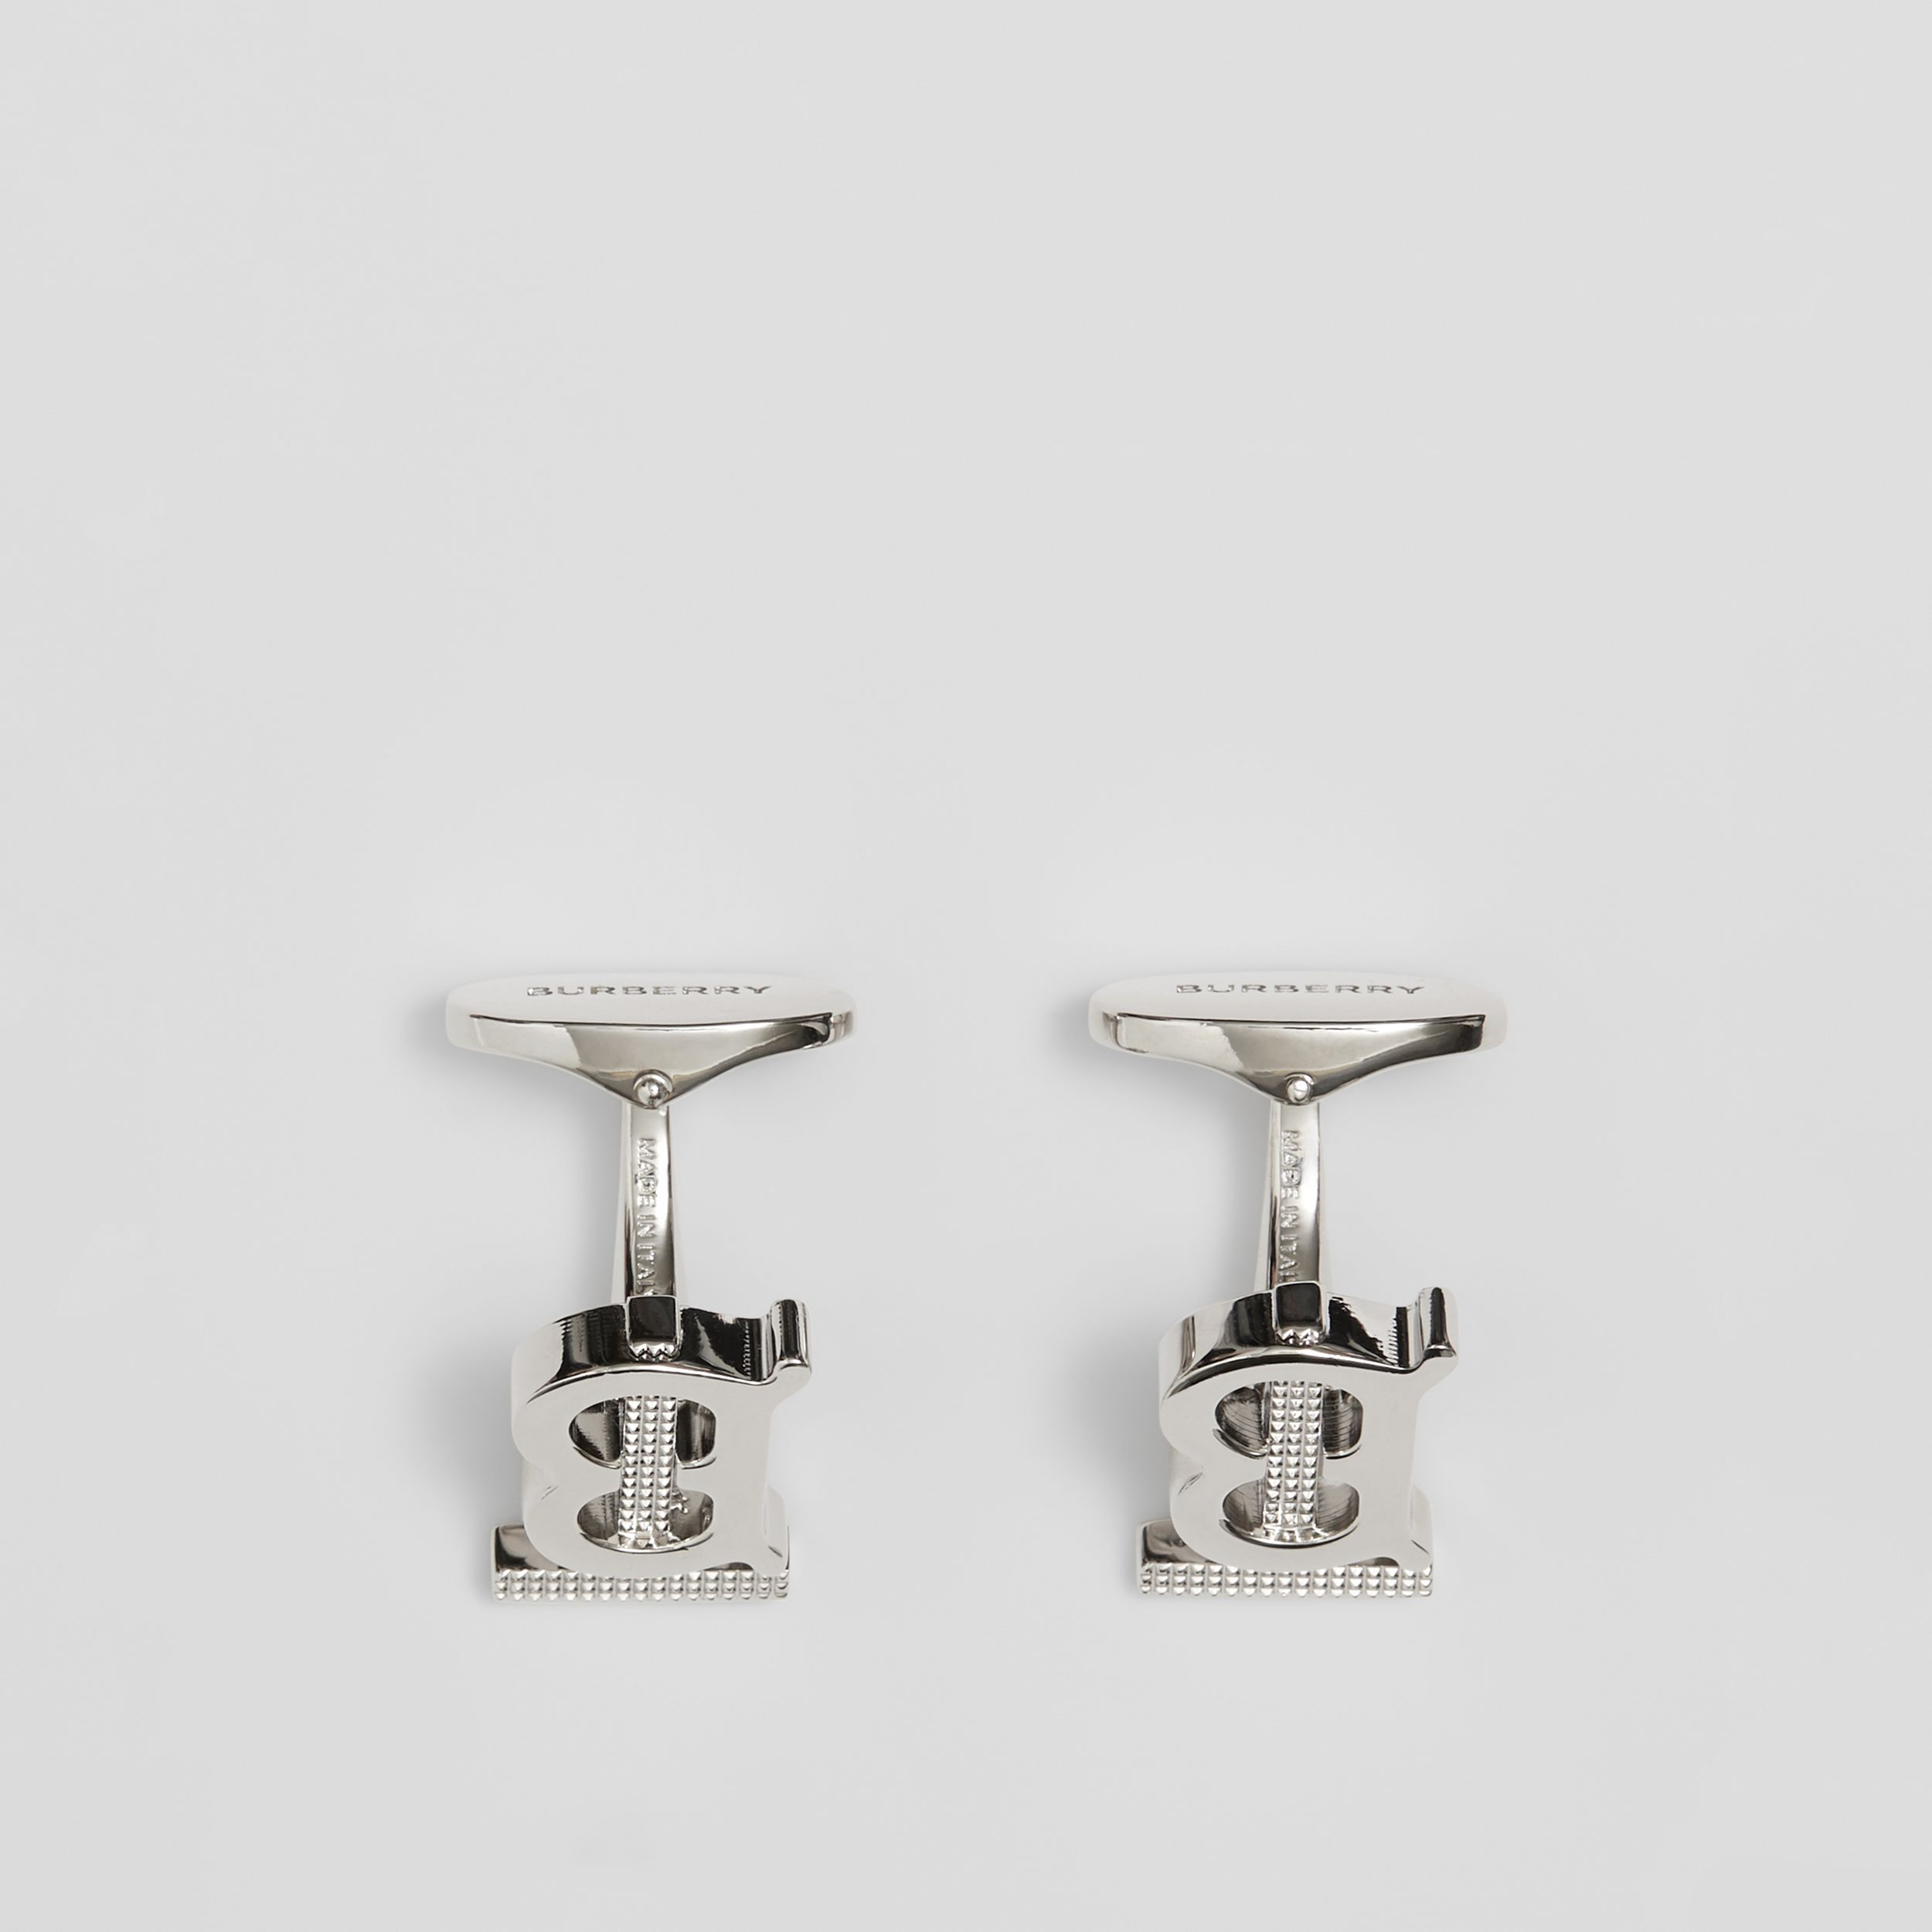 Studded Monogram Motif Palladium-plated Cufflinks - Men | Burberry - 4